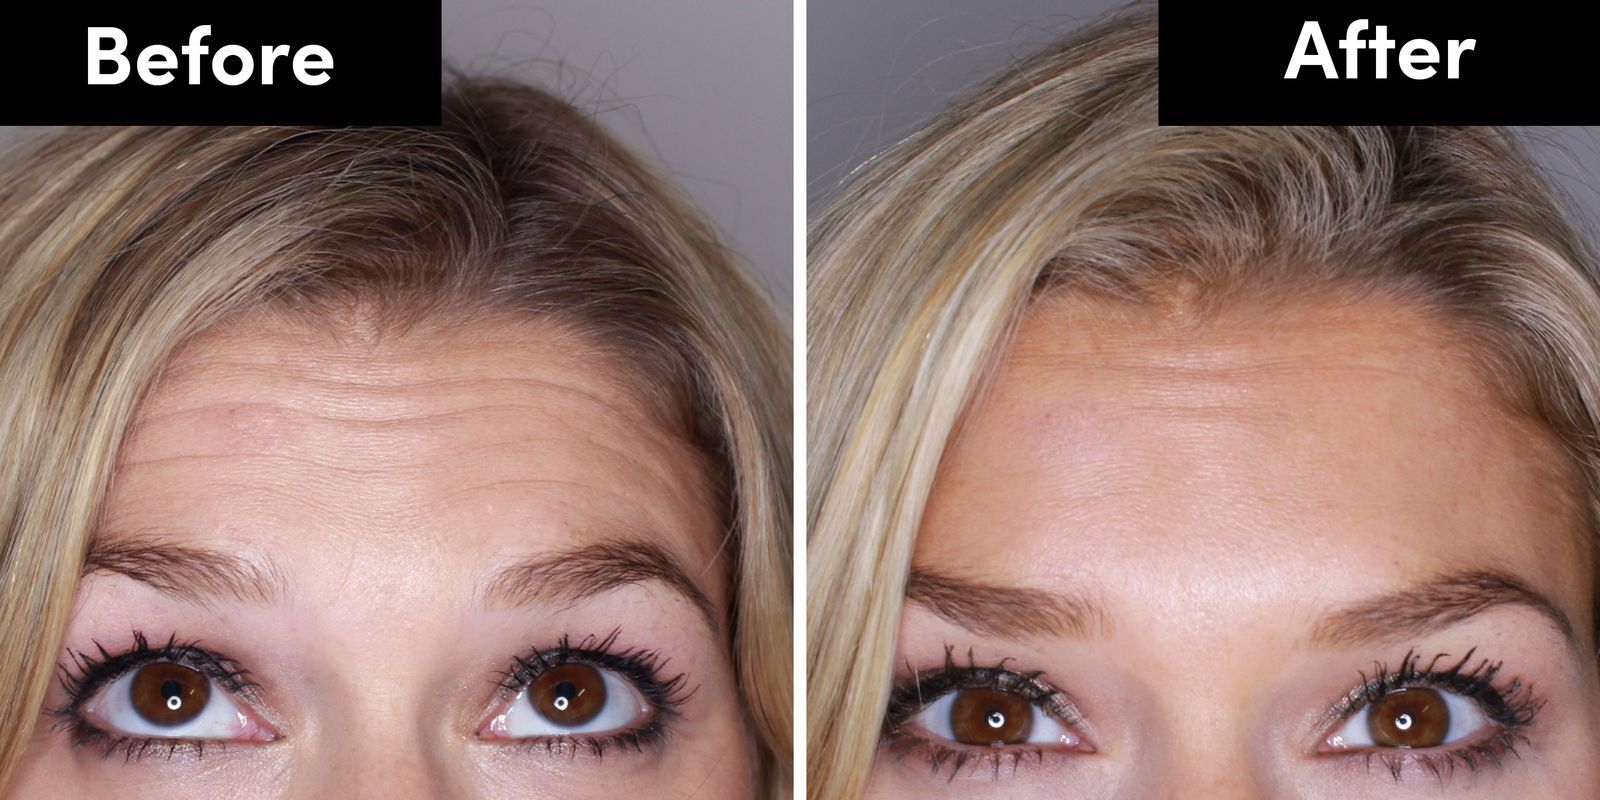 9 things I wish I'd known before getting botox Botox